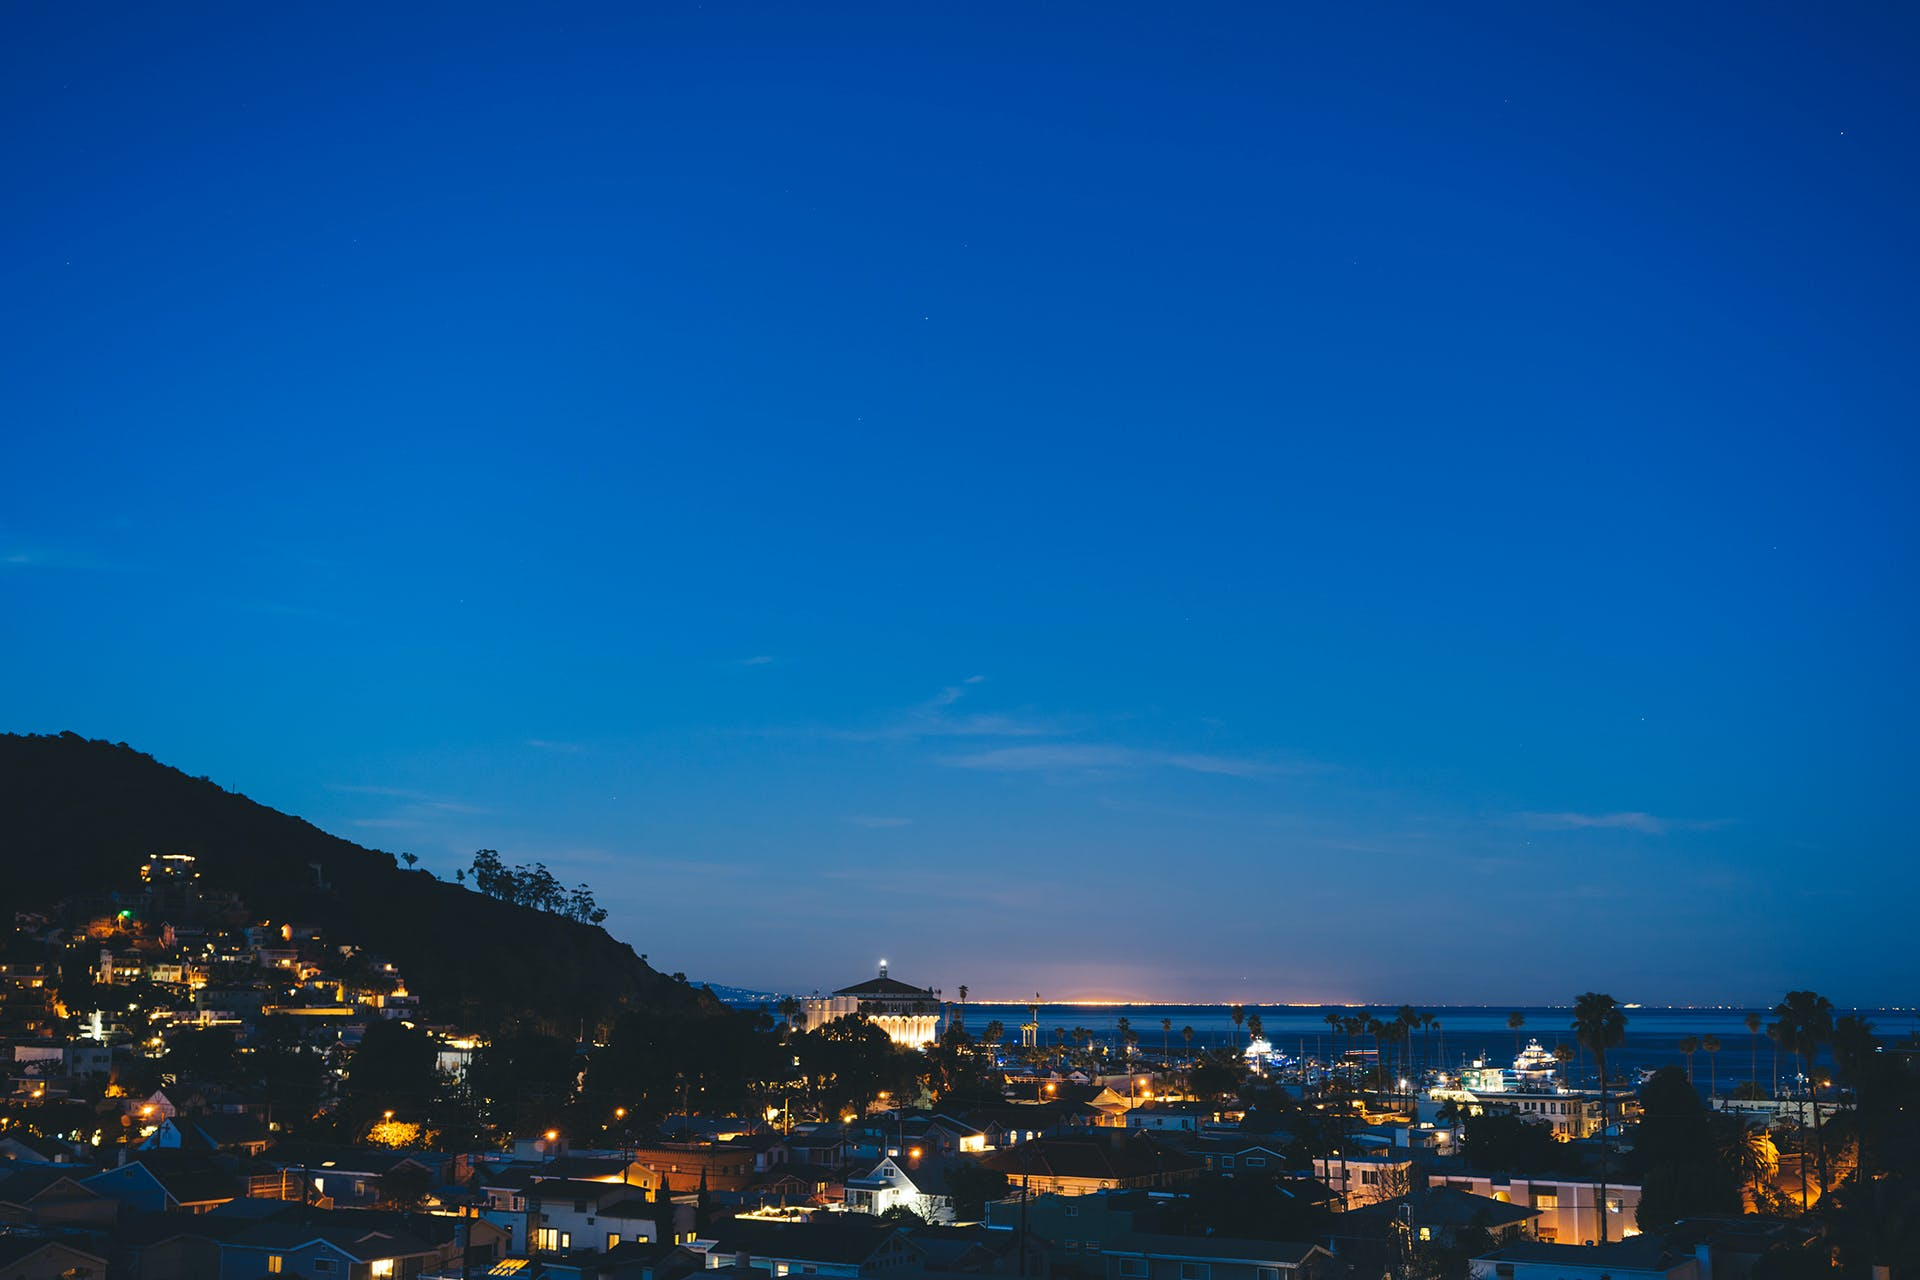 Free stock photo of sky, houses, lights, night